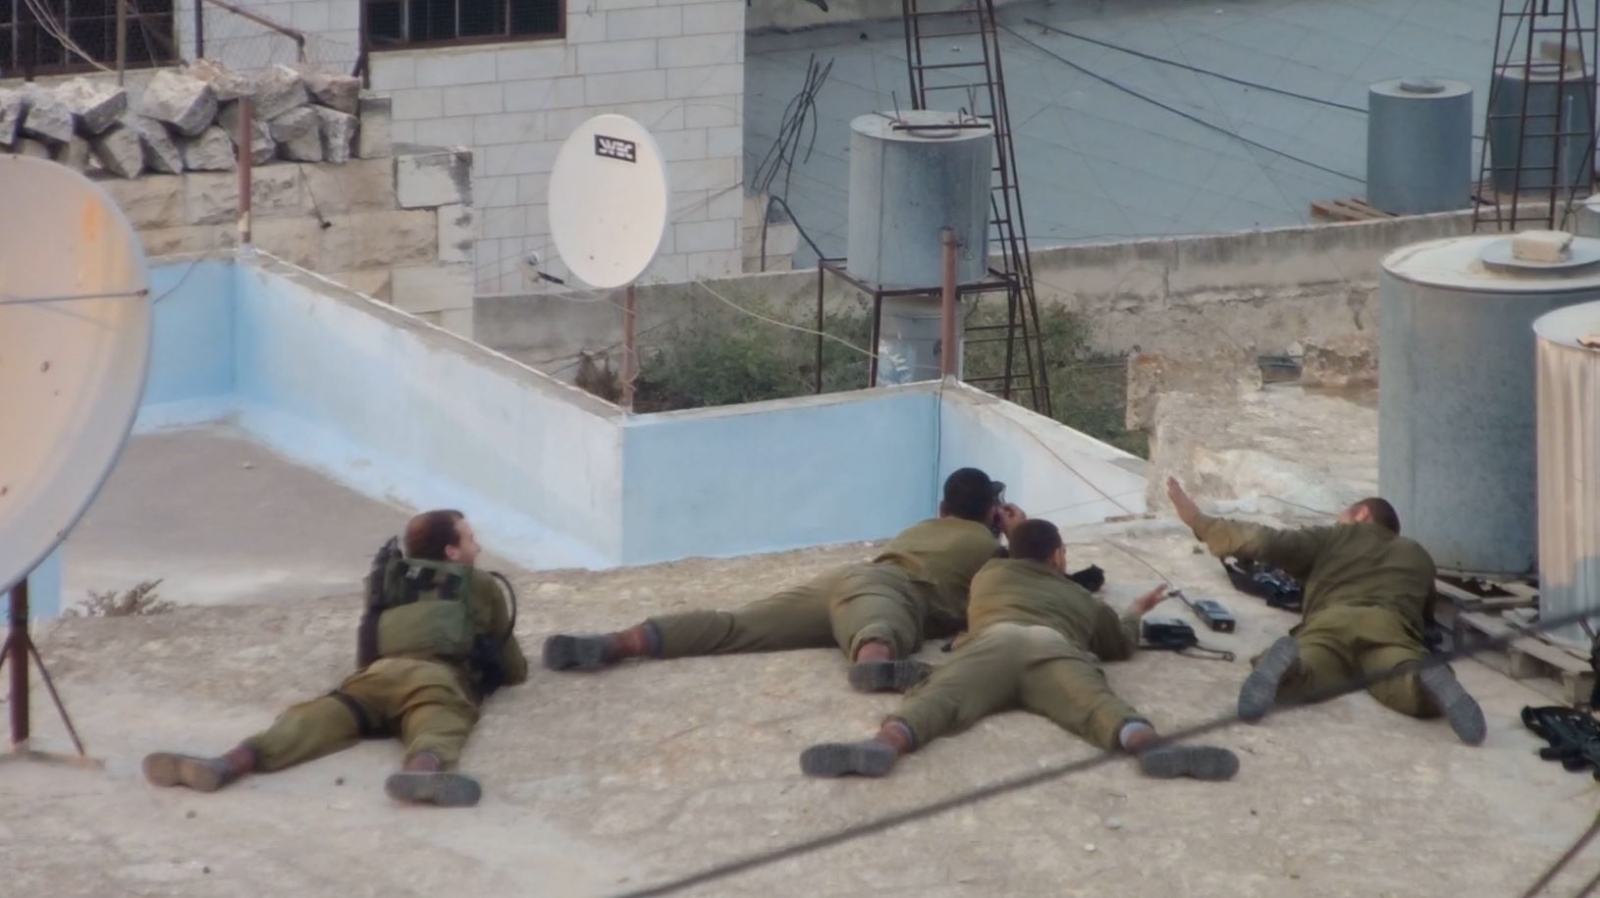 Amatuer Video shows Israeli Soldiers Celebrate Shooting Palestinian Teen